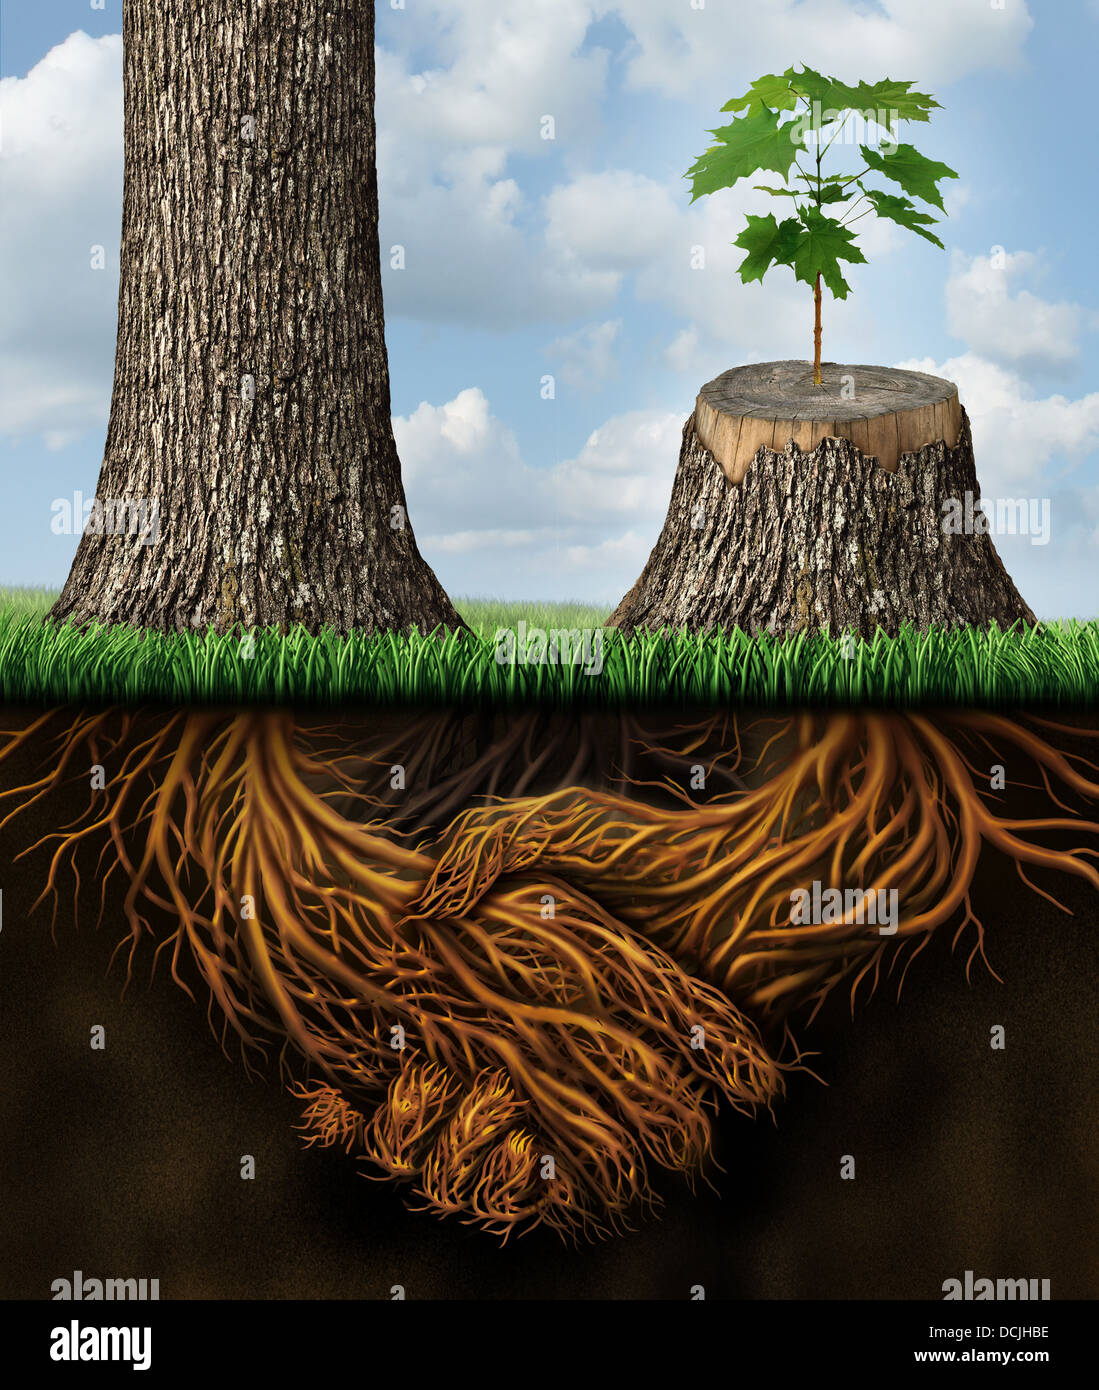 Business help and support concept as a tall tree next to a sick stump with a new growth of hope emerging in cooperation - Stock Image